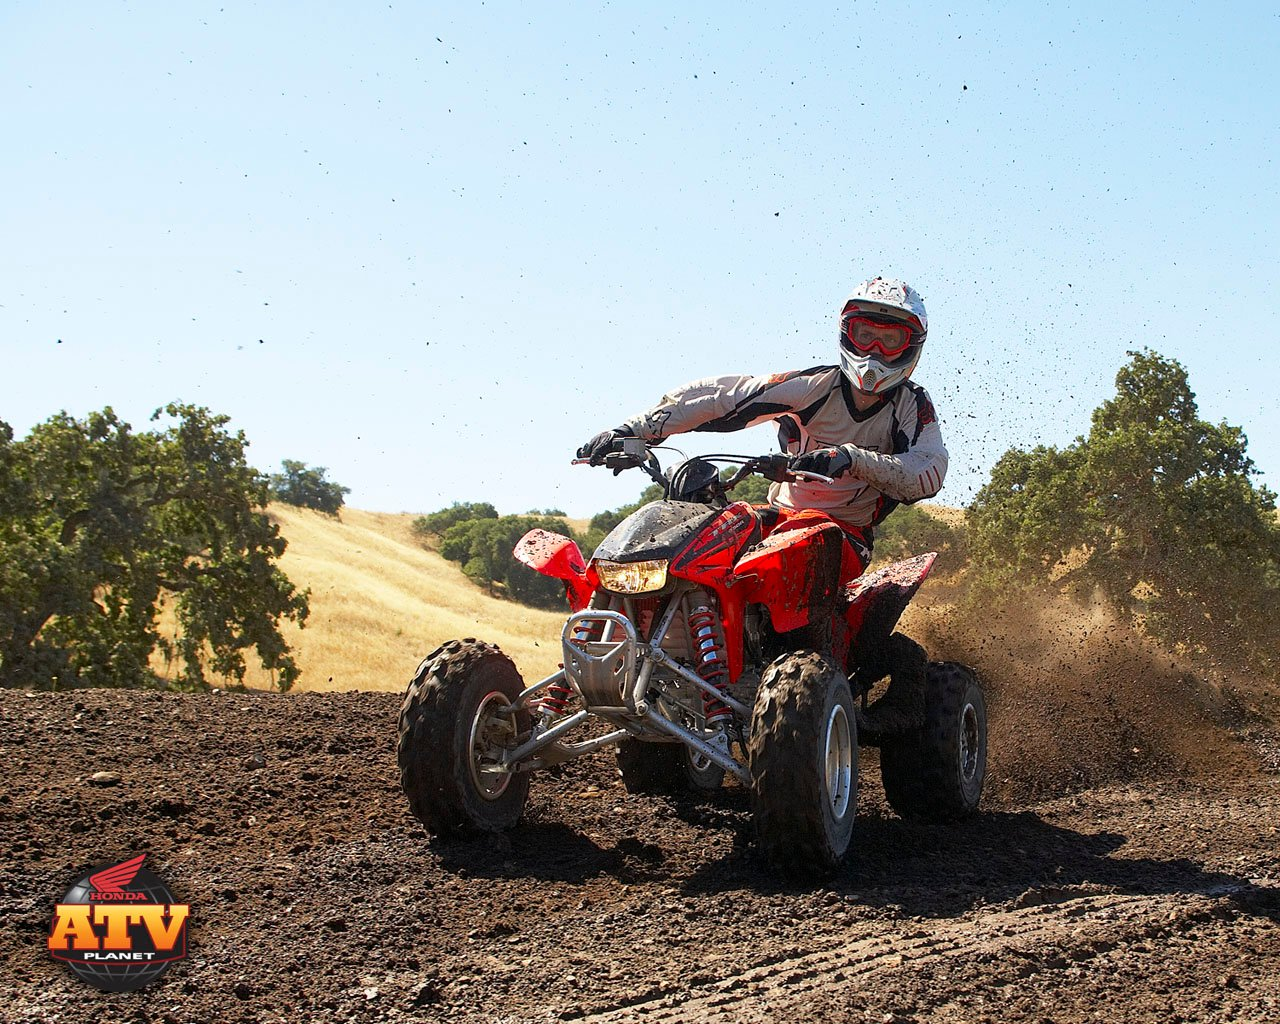 honda atv wallpaper 1280x1024